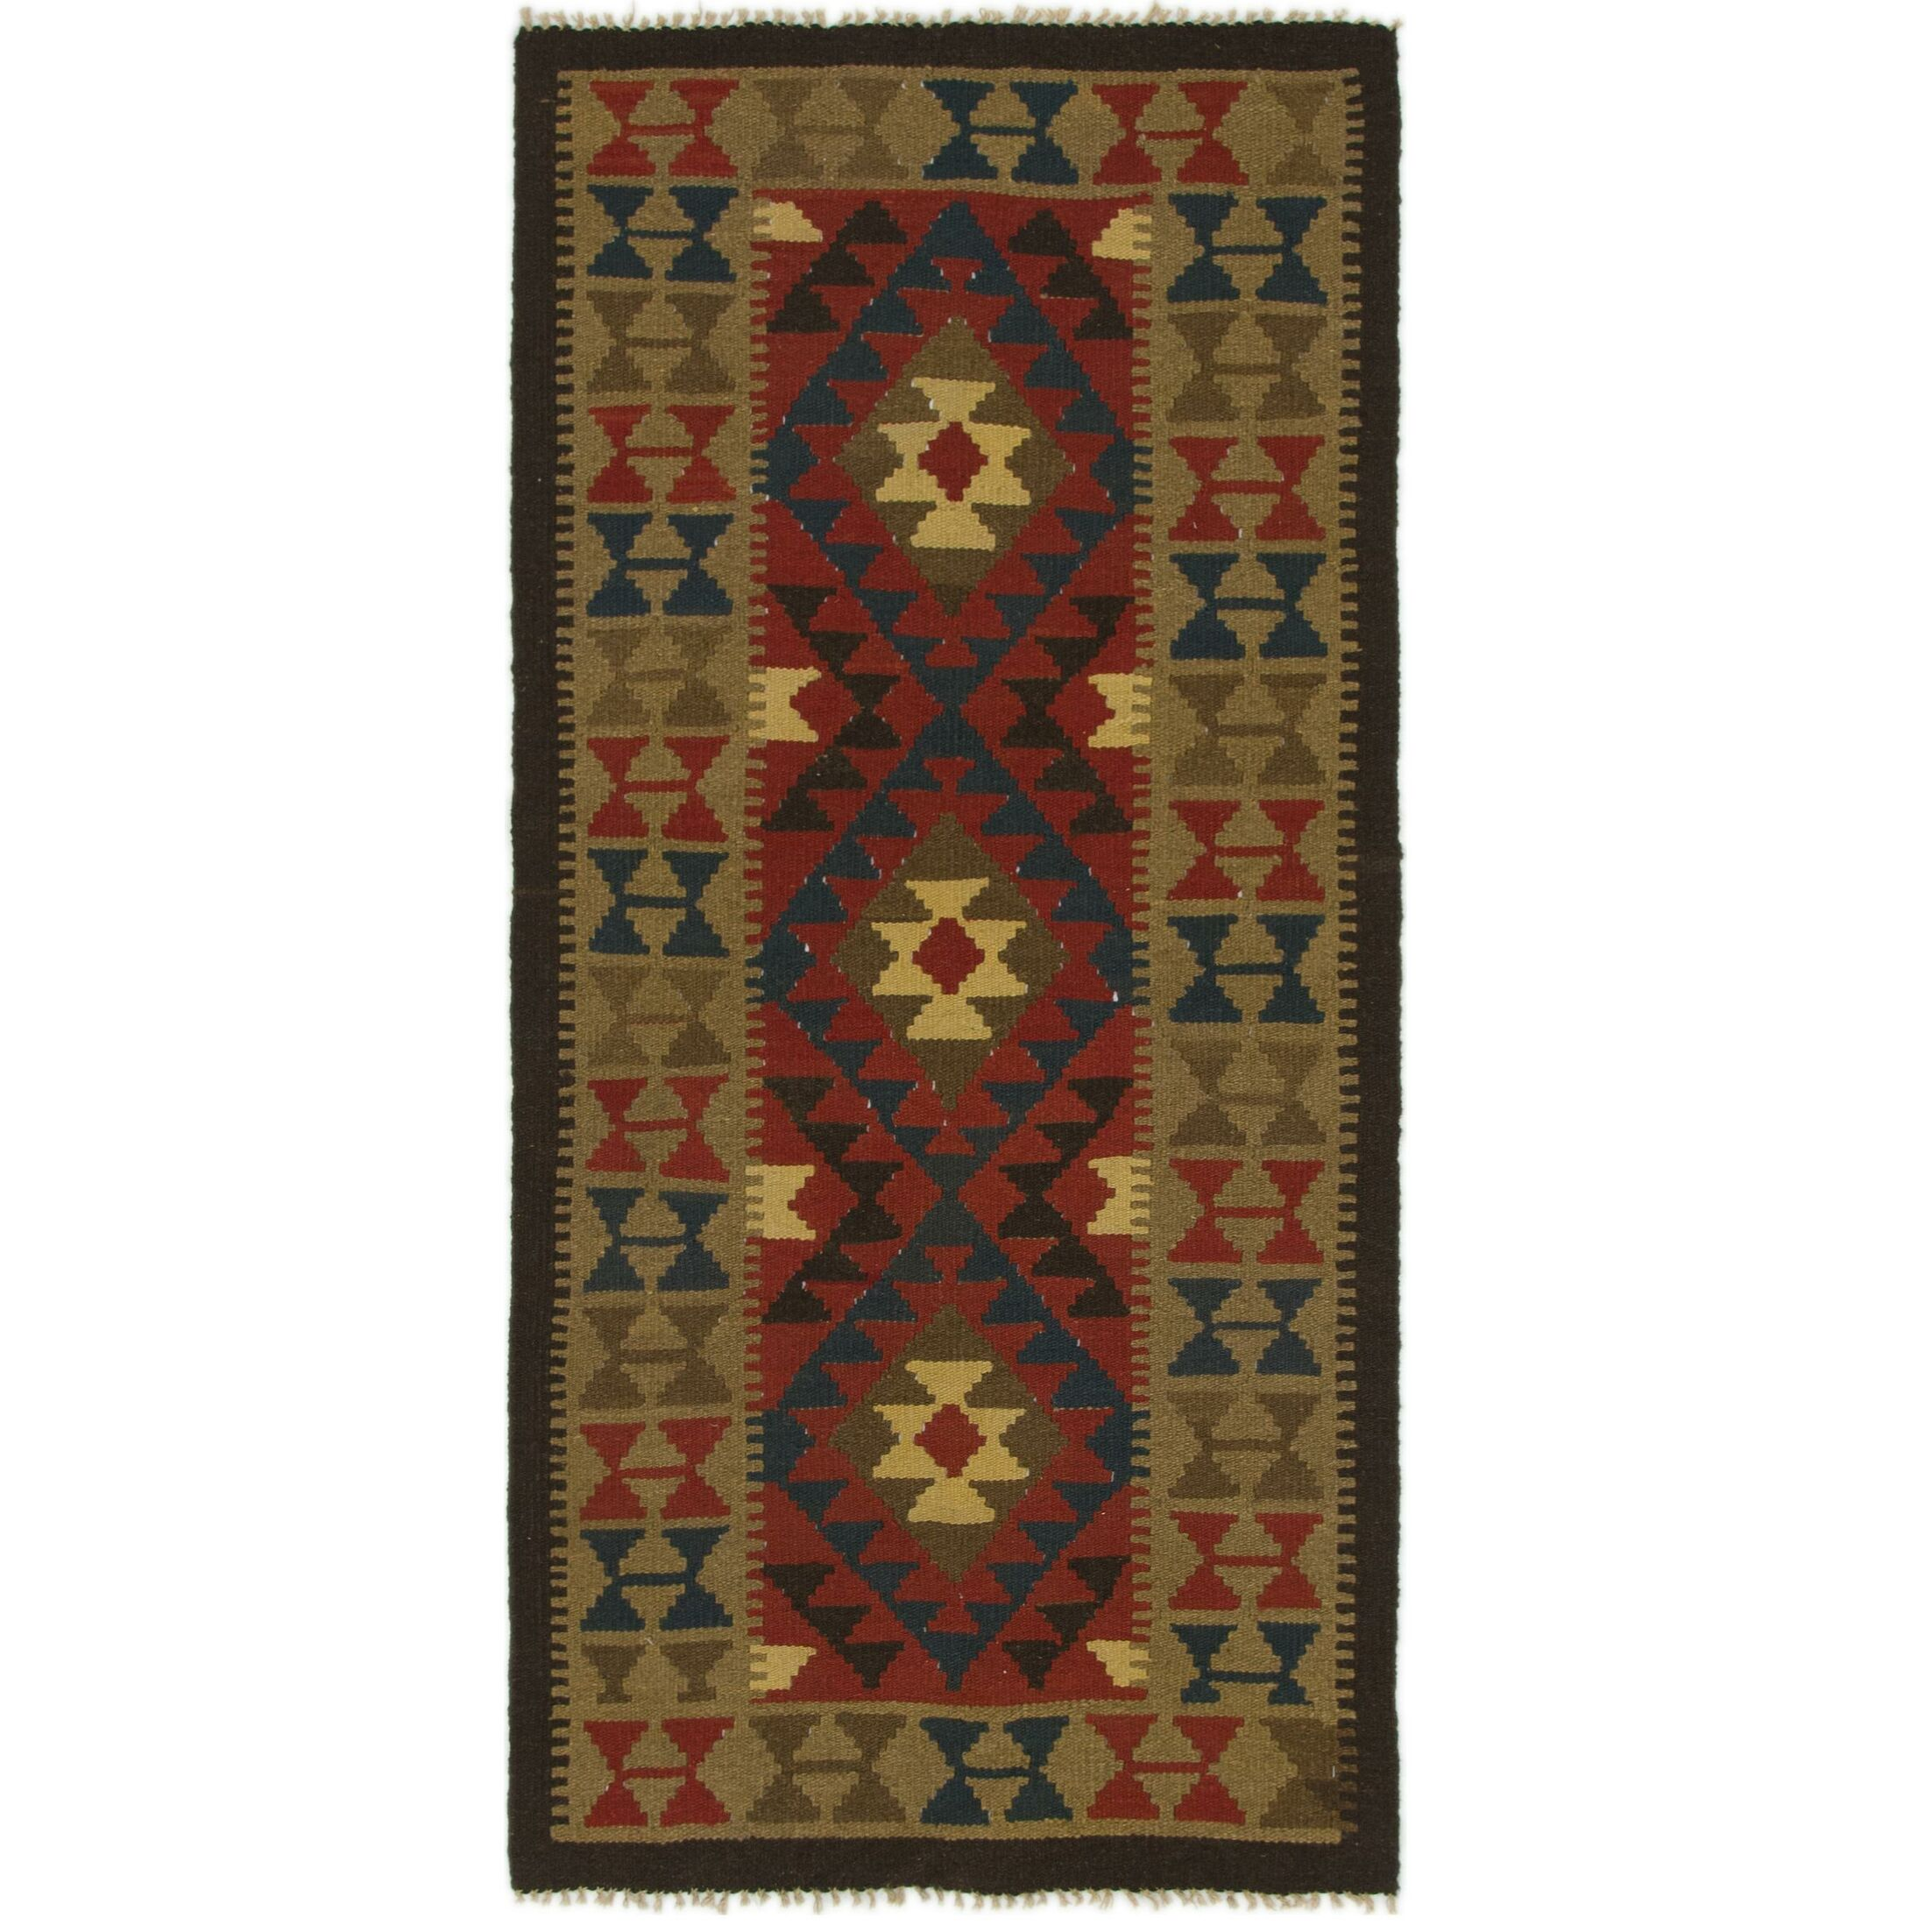 One-of-a-Kind Shropshire Kilim Maymana Hand-Knotted Wool 3'2